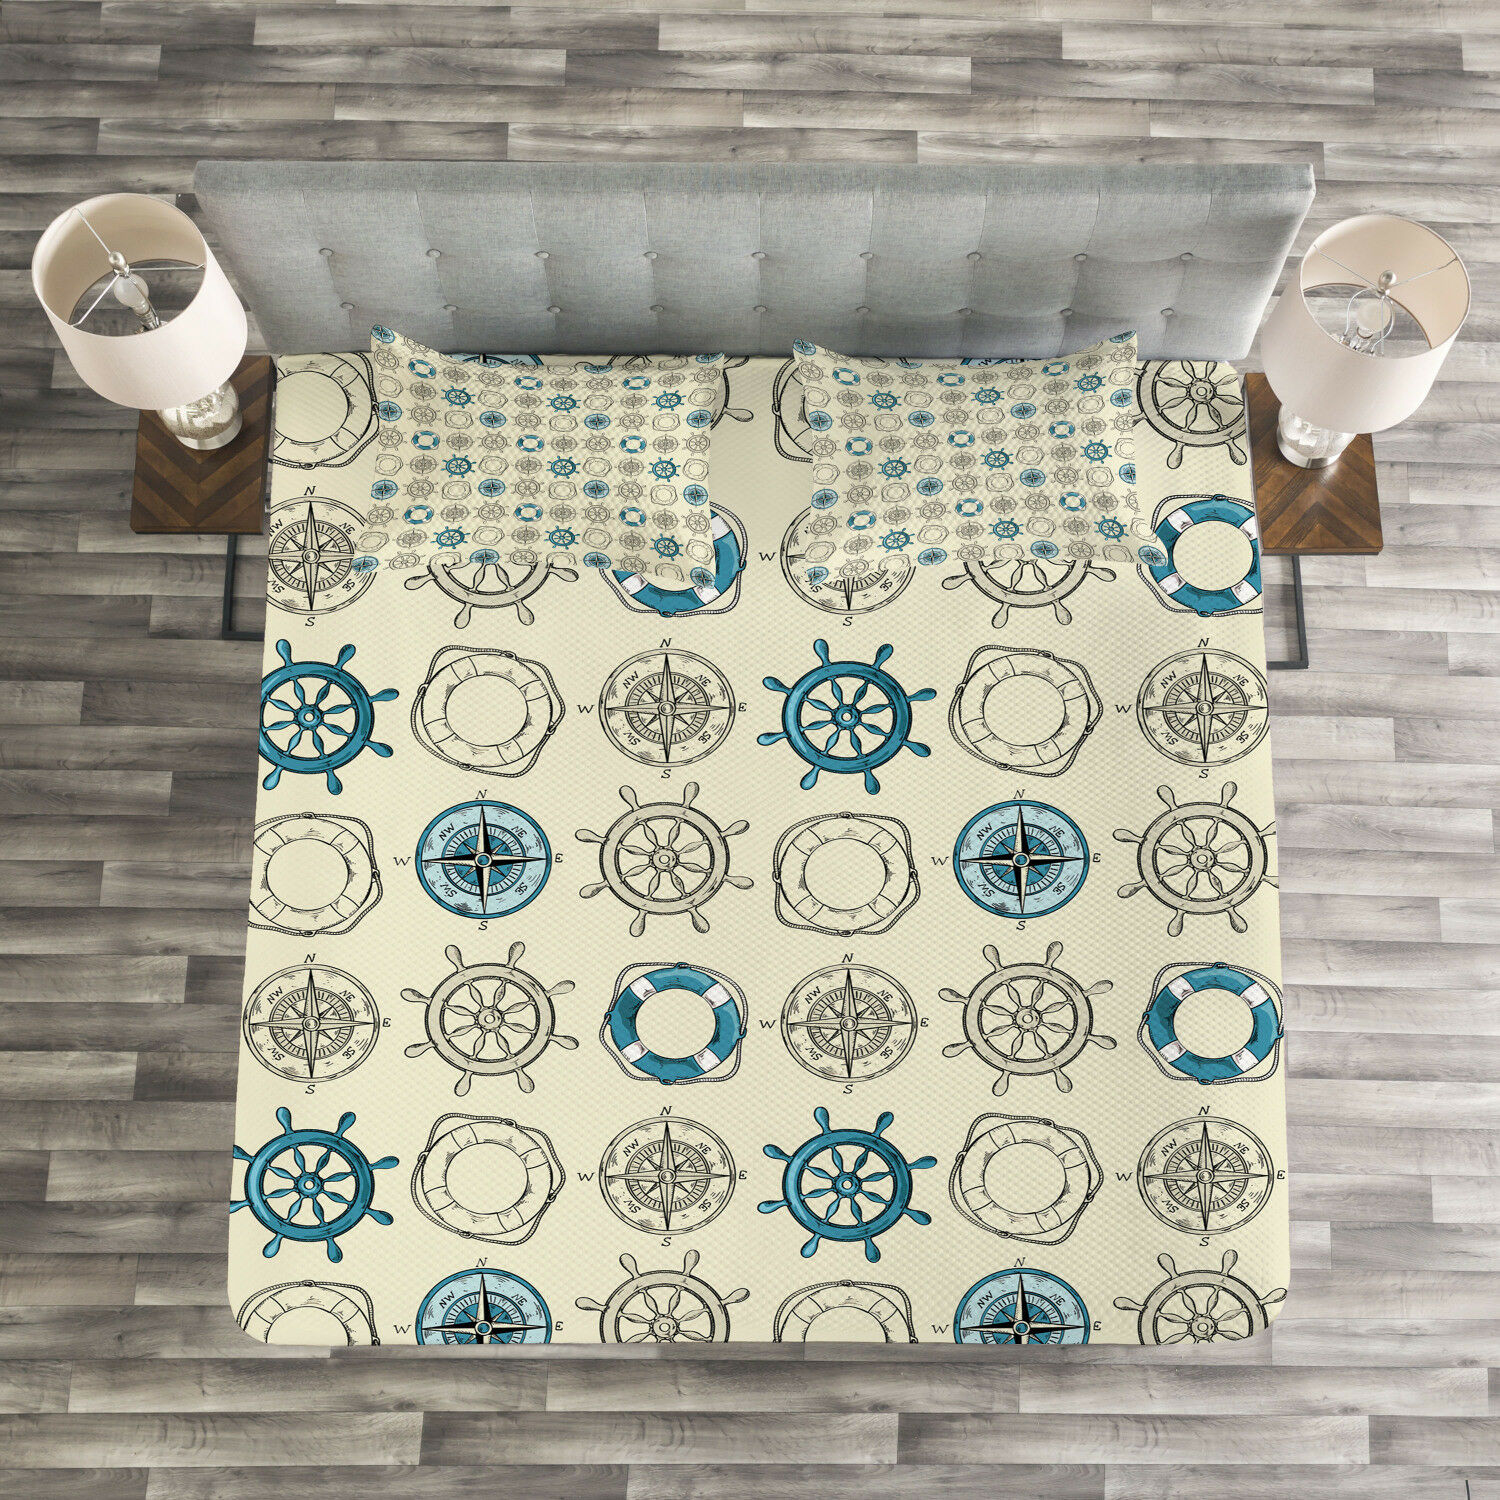 Compass Quilted Bedspread & Pillow Shams Set, Marine Inspired Retro Print